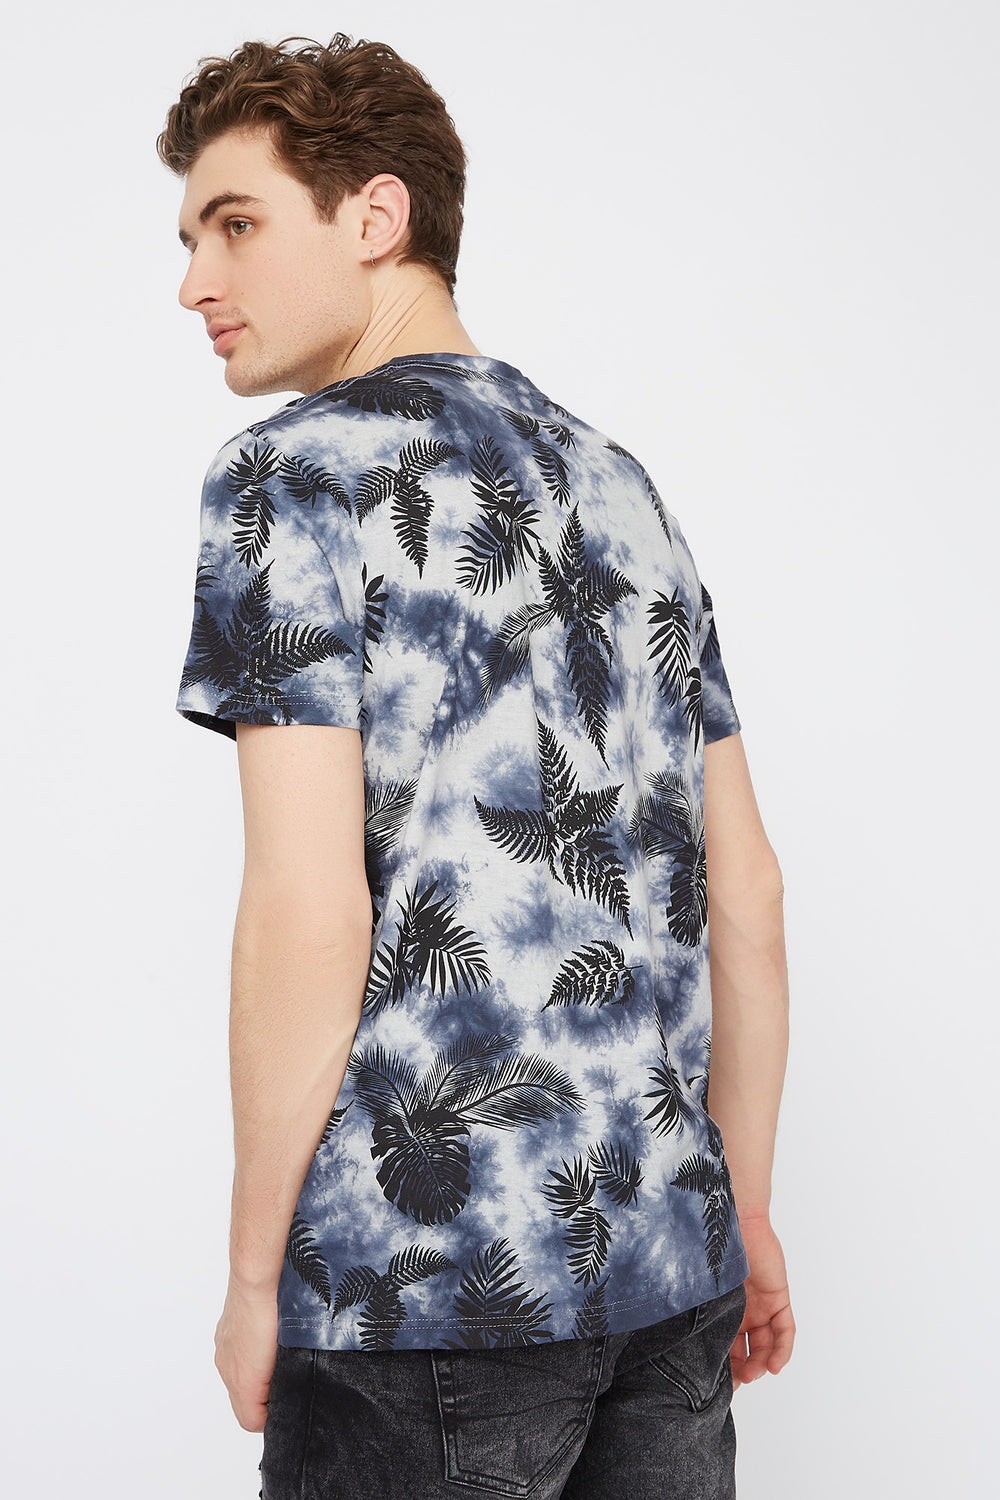 Tie-Dye Palm Leaf Printed T-Shirt White